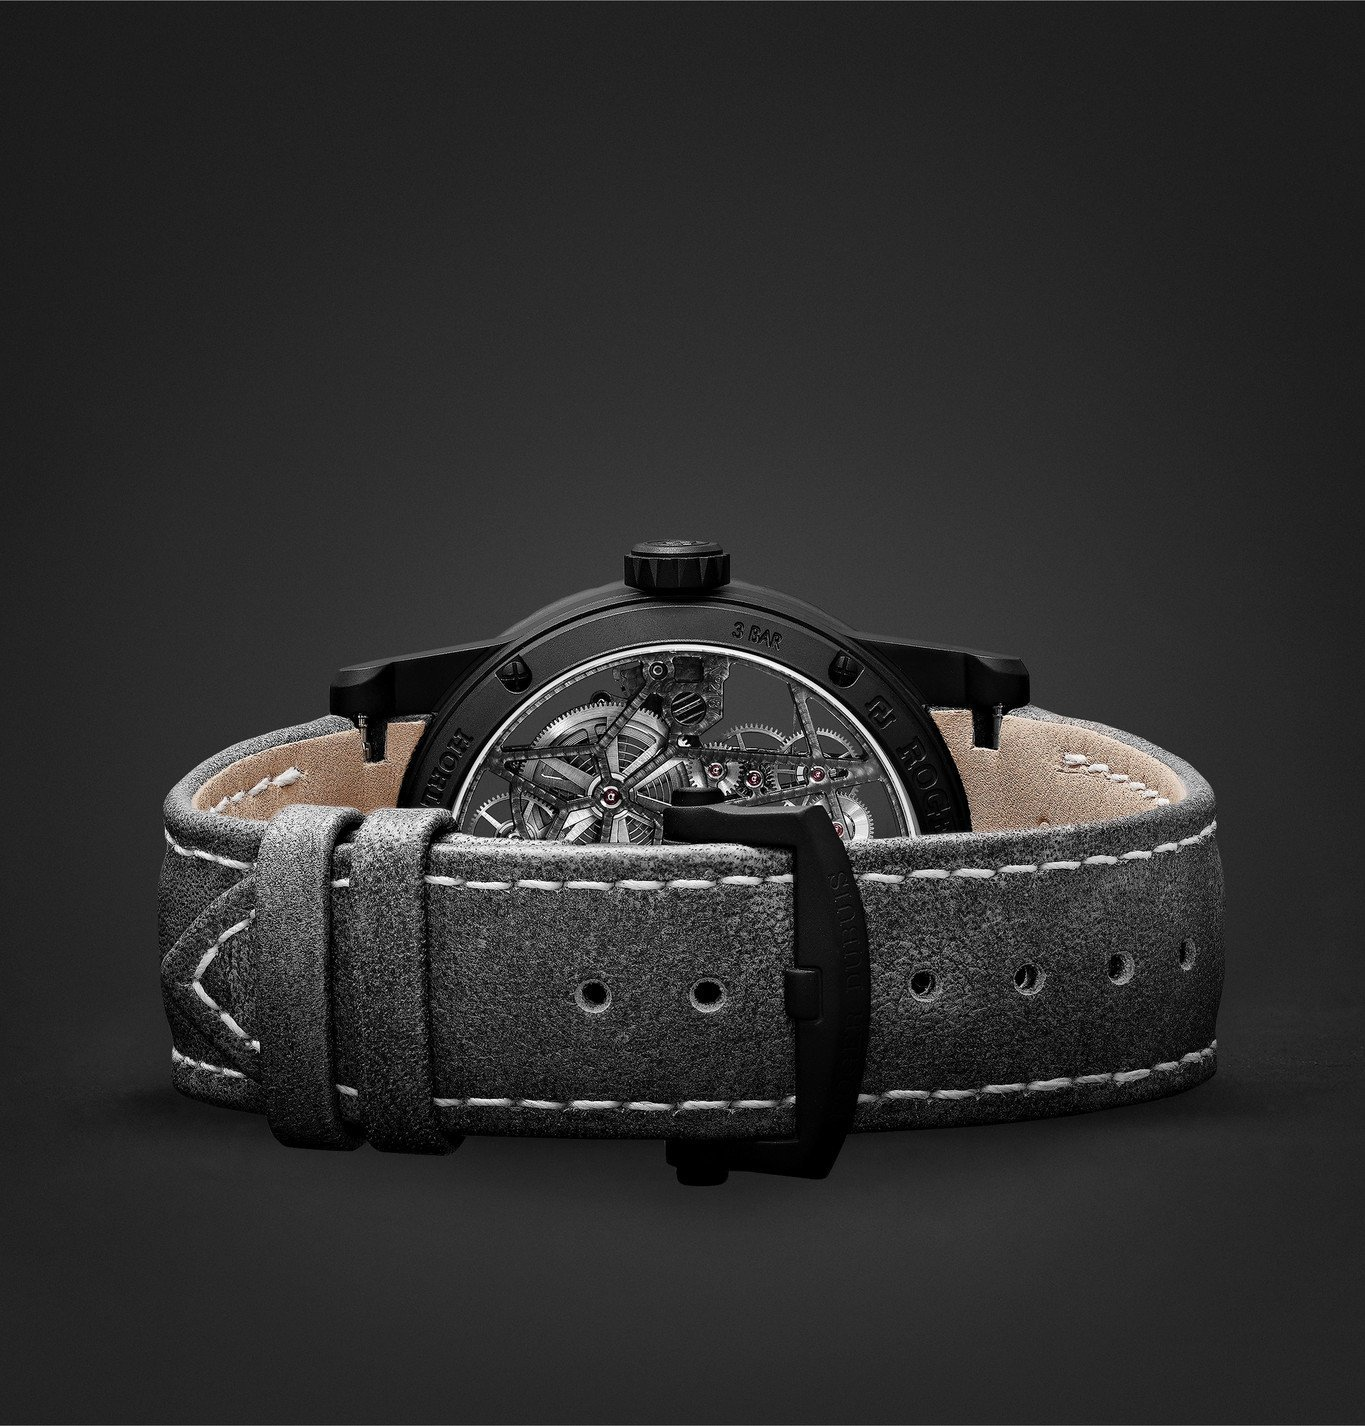 Roger Dubuis - Excalibur Automatic Skeleton 42mm Titanium and Leather Watch, Ref. No. DBEX0726 - Unknown